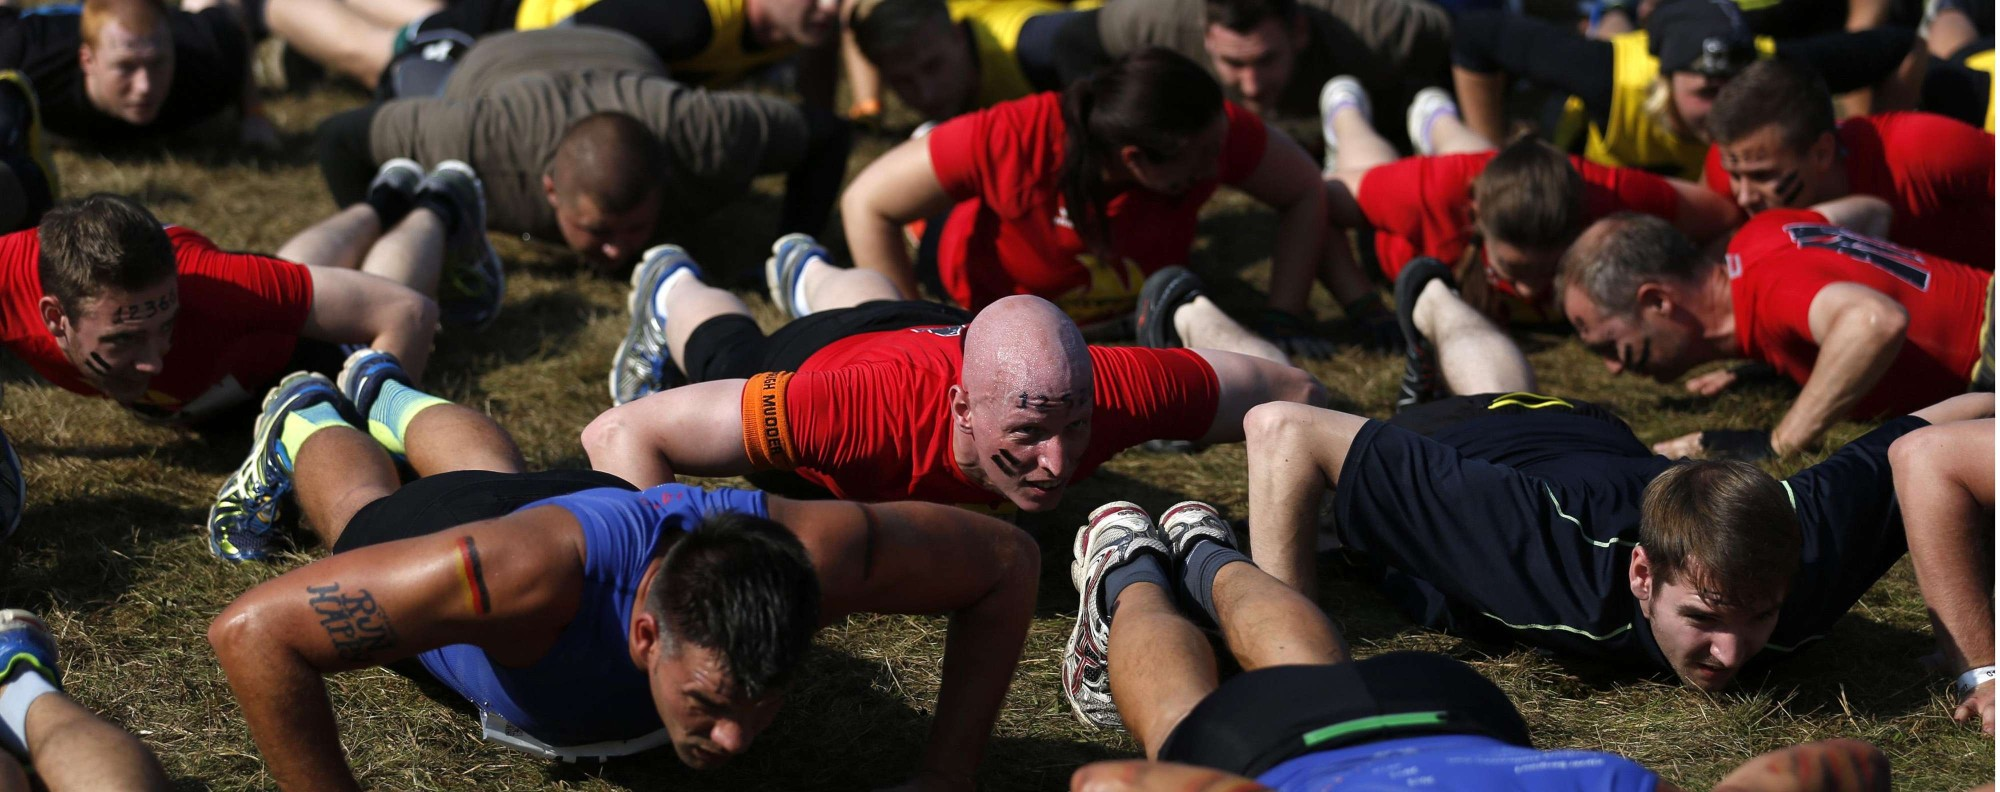 """Participants warm up for the """"Tough Mudder"""" endurance event series in Arnsberg September 6, 2014. Competitors who took part in the endurance event saw themselves having to overcome various military style obstacles. REUTERS/Ina Fassbender (GERMANY - Tags: SOCIETY SPORT)"""